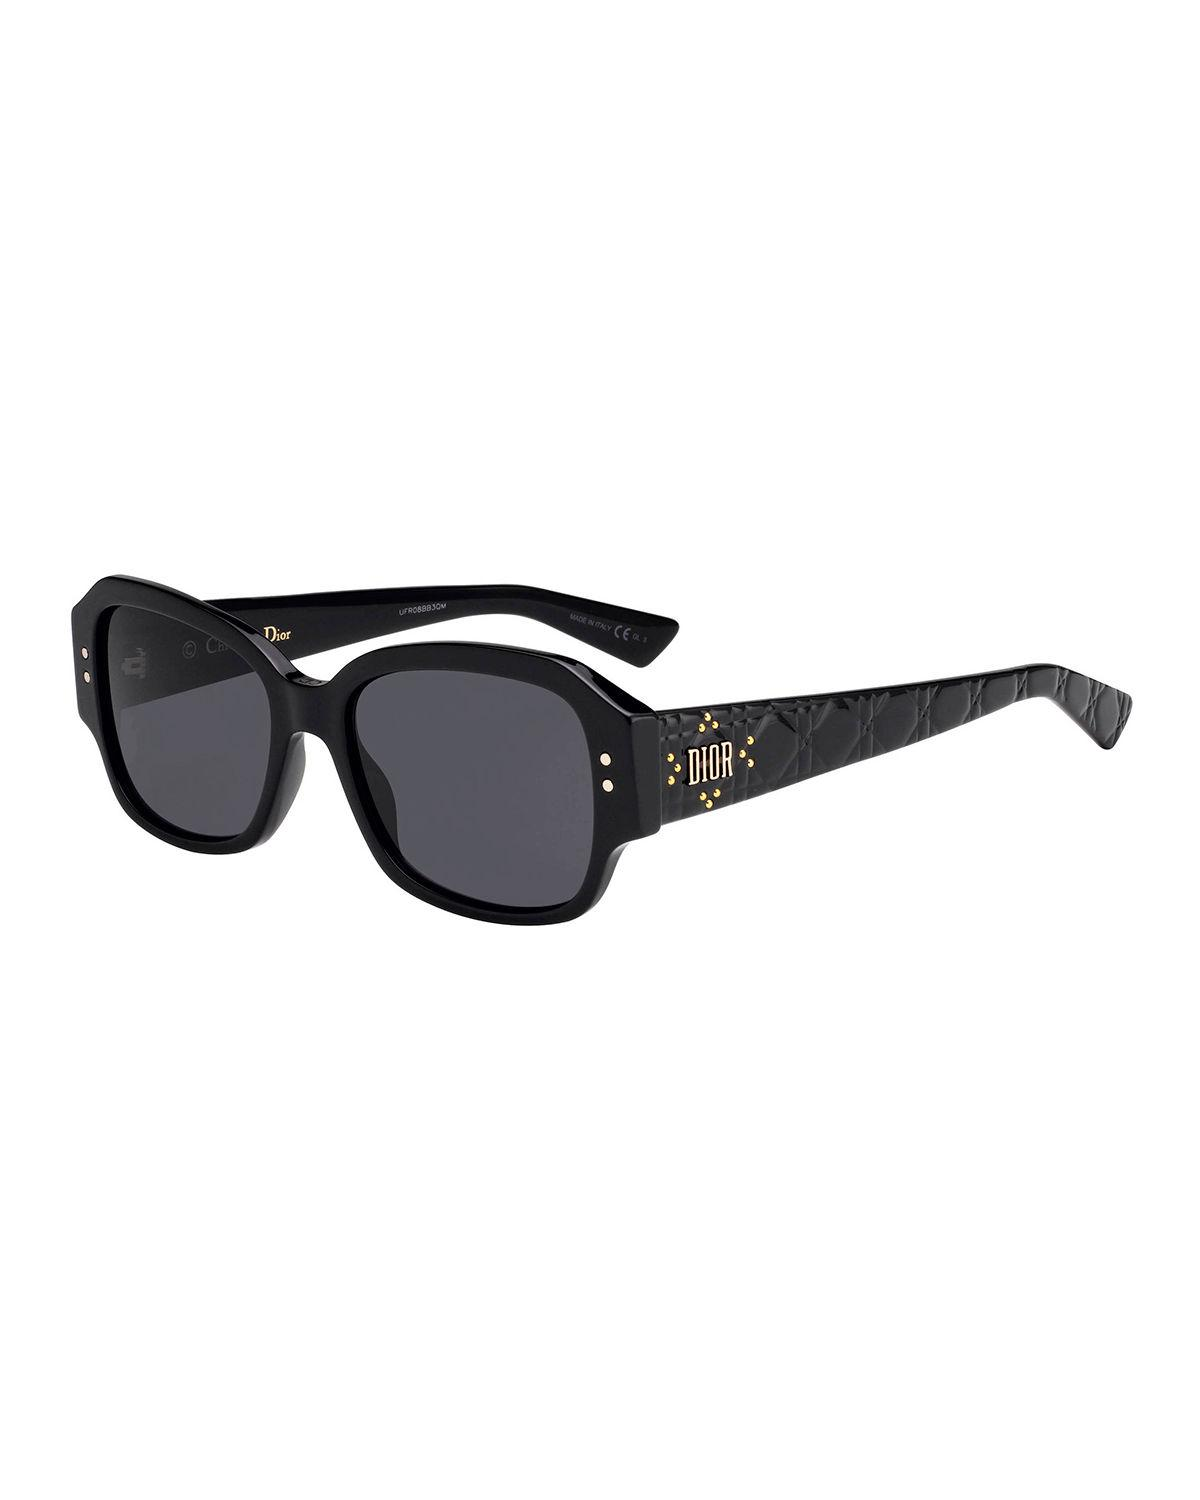 60ee4cf6829 Dior Studs5 54Mm Sunglasses - Black